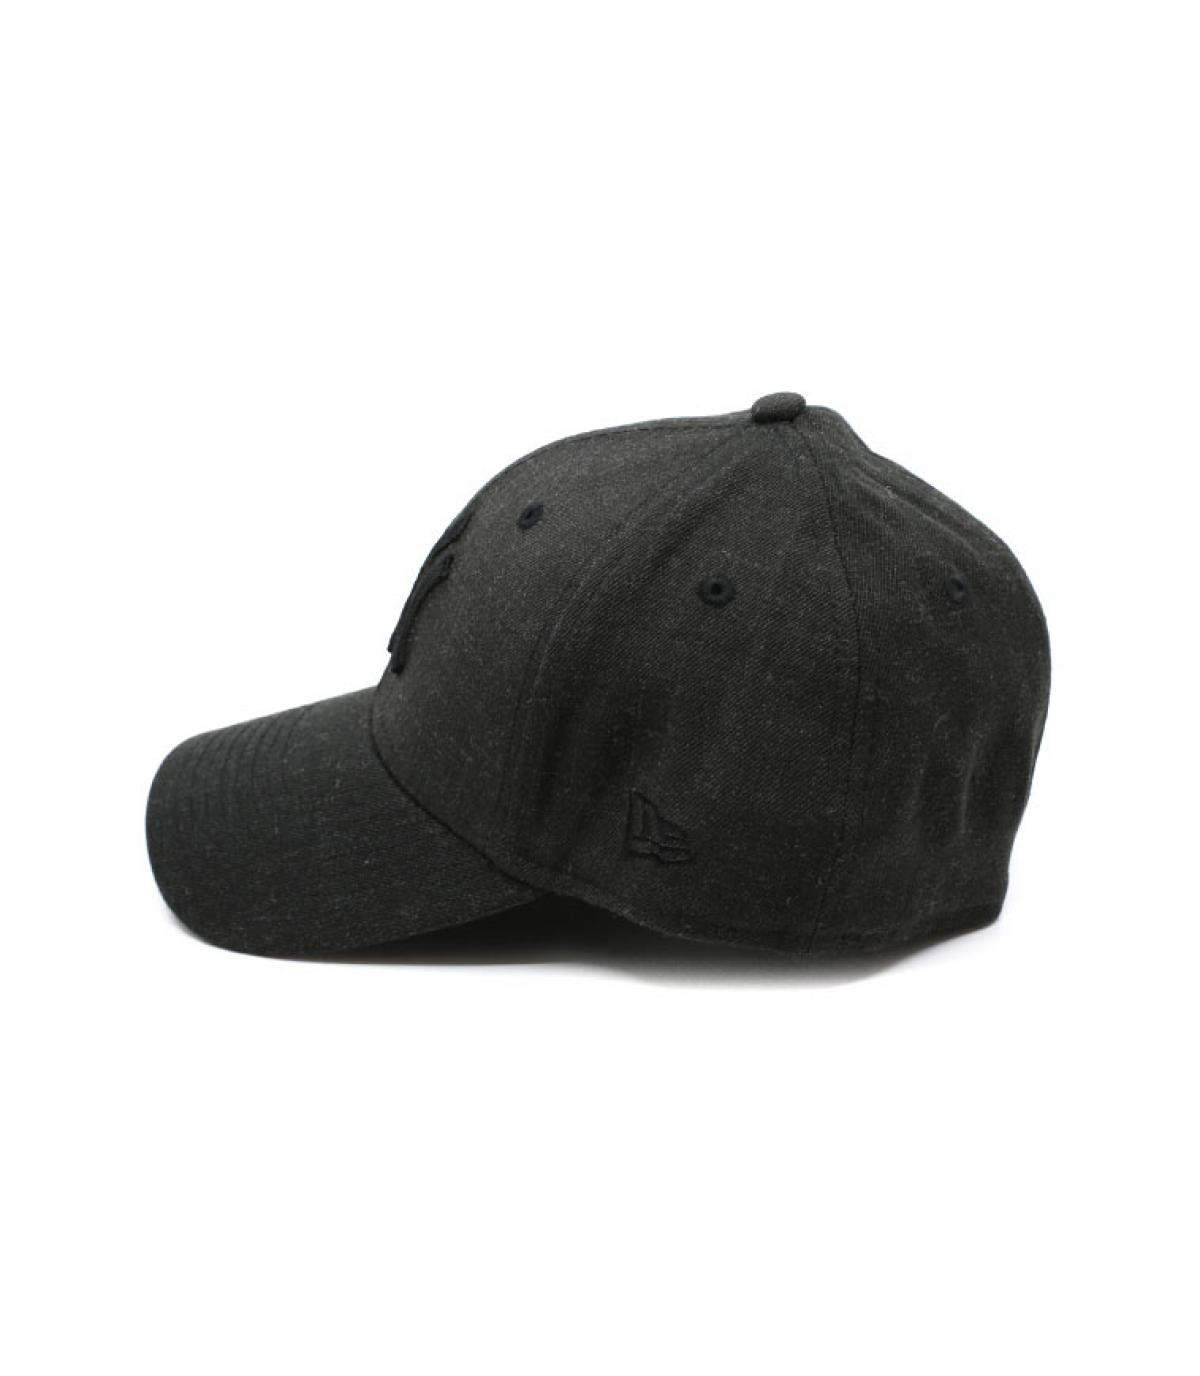 Détails Casquette MLB Heather 39Thirty NY black - image 4